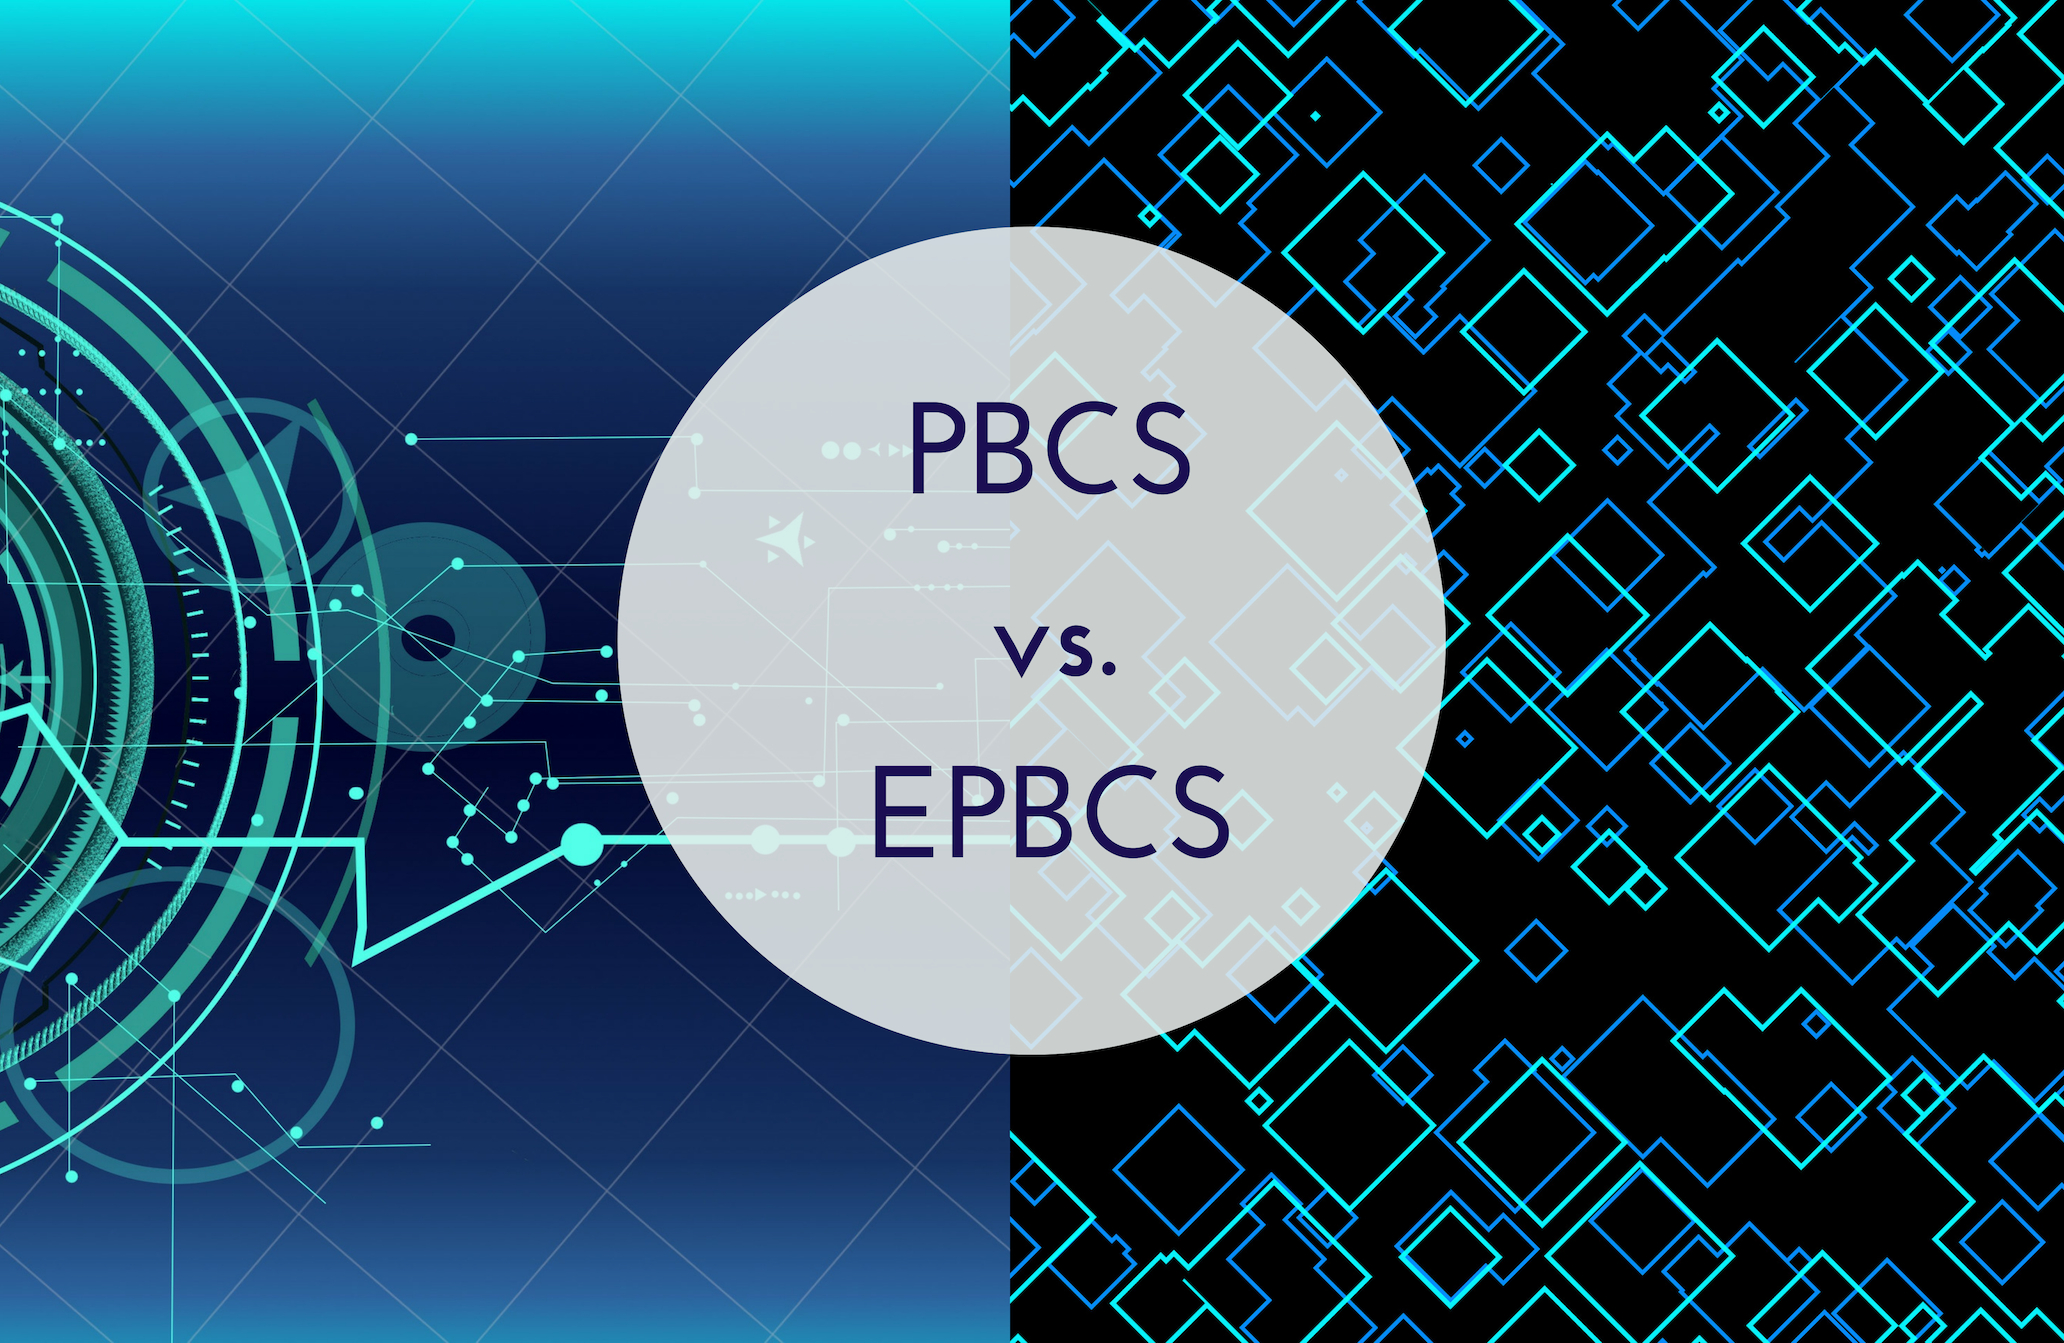 PBCS vs. EPBCS